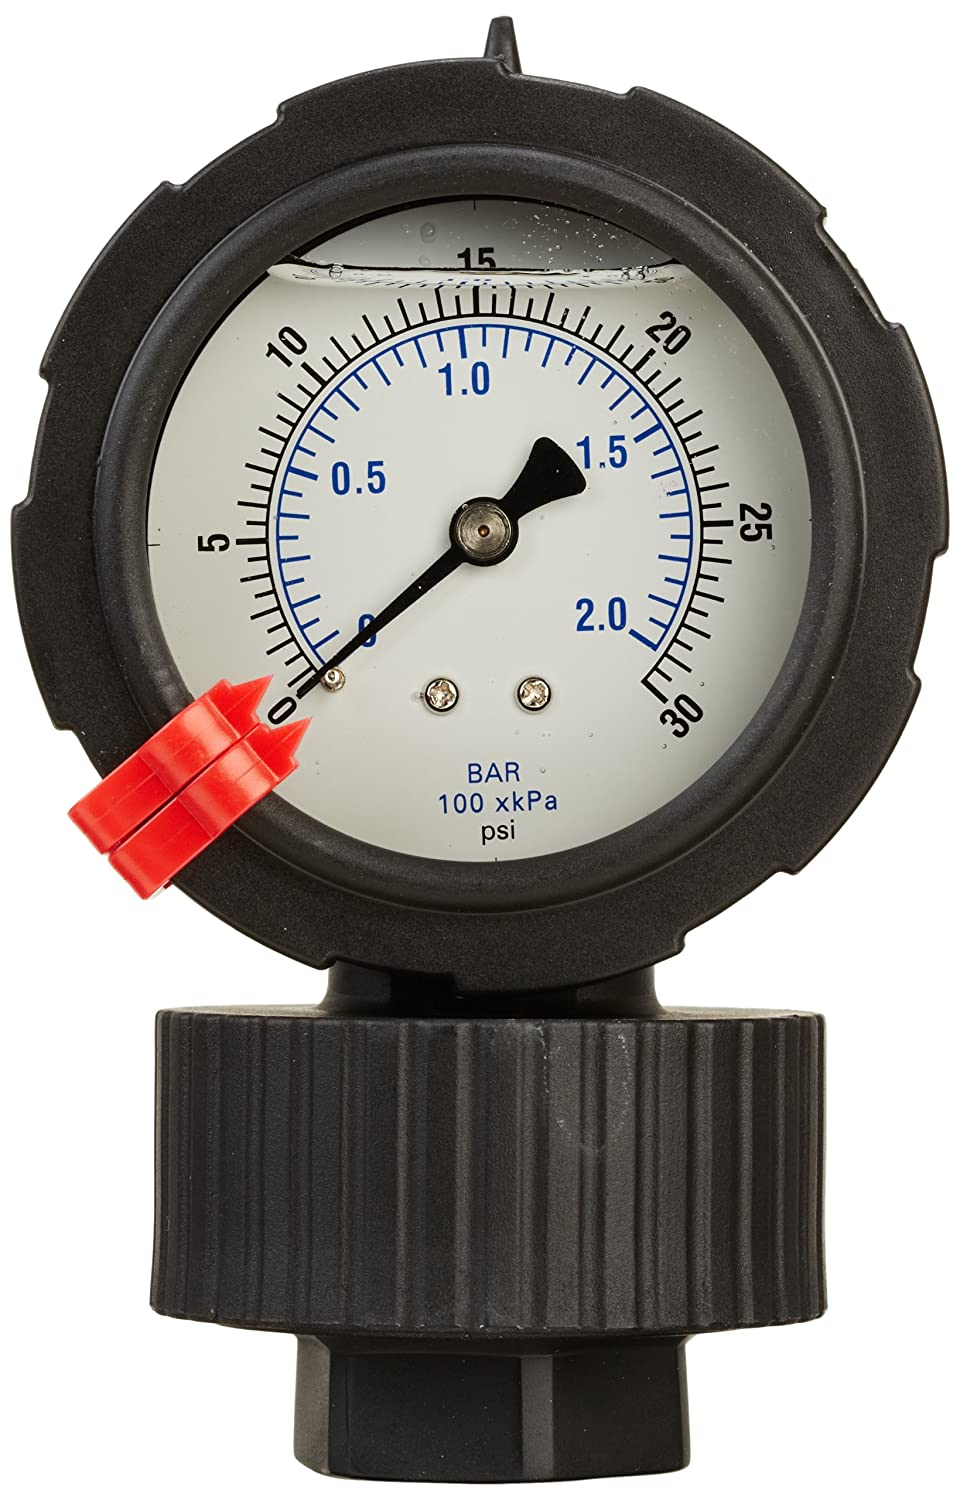 1//4 Female NPT Connection Size and Polycarbonate Lens 0//30 psi Range Bottom Mount Glycerine Filled Molded Pressure Gauge and Diaphragm Seal with a Polypropylene Case PIC Gauge 701LDS-254C  2.5 Dial Polypropylene Lower Housing Viton Diaphragm